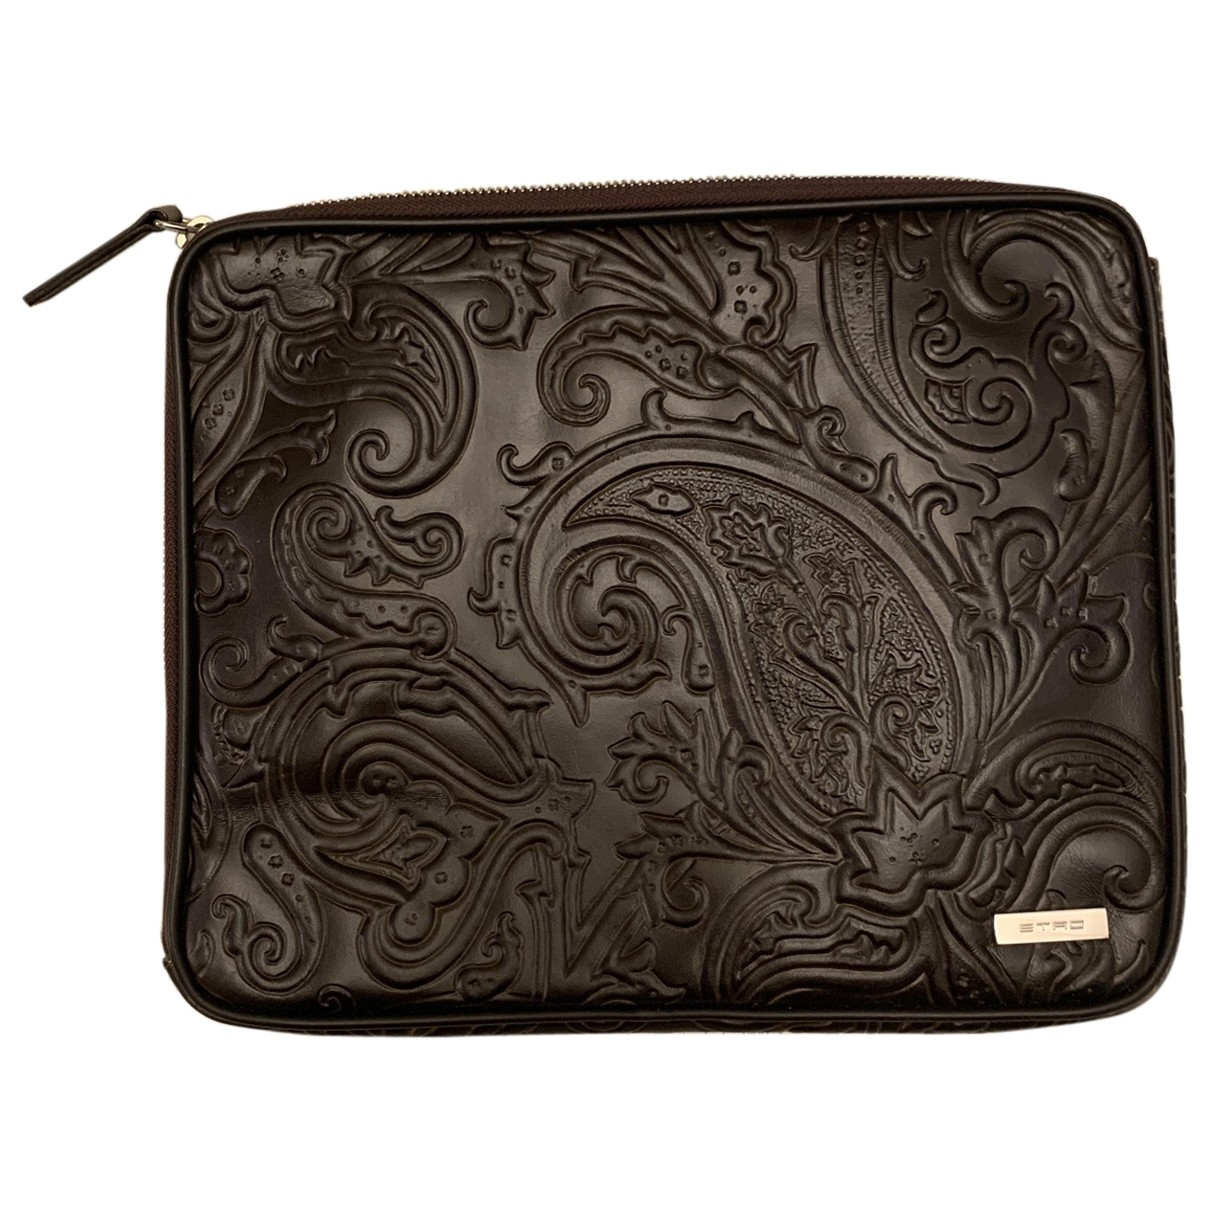 Etro \N Brown Leather Purses, wallet & cases for Women \N